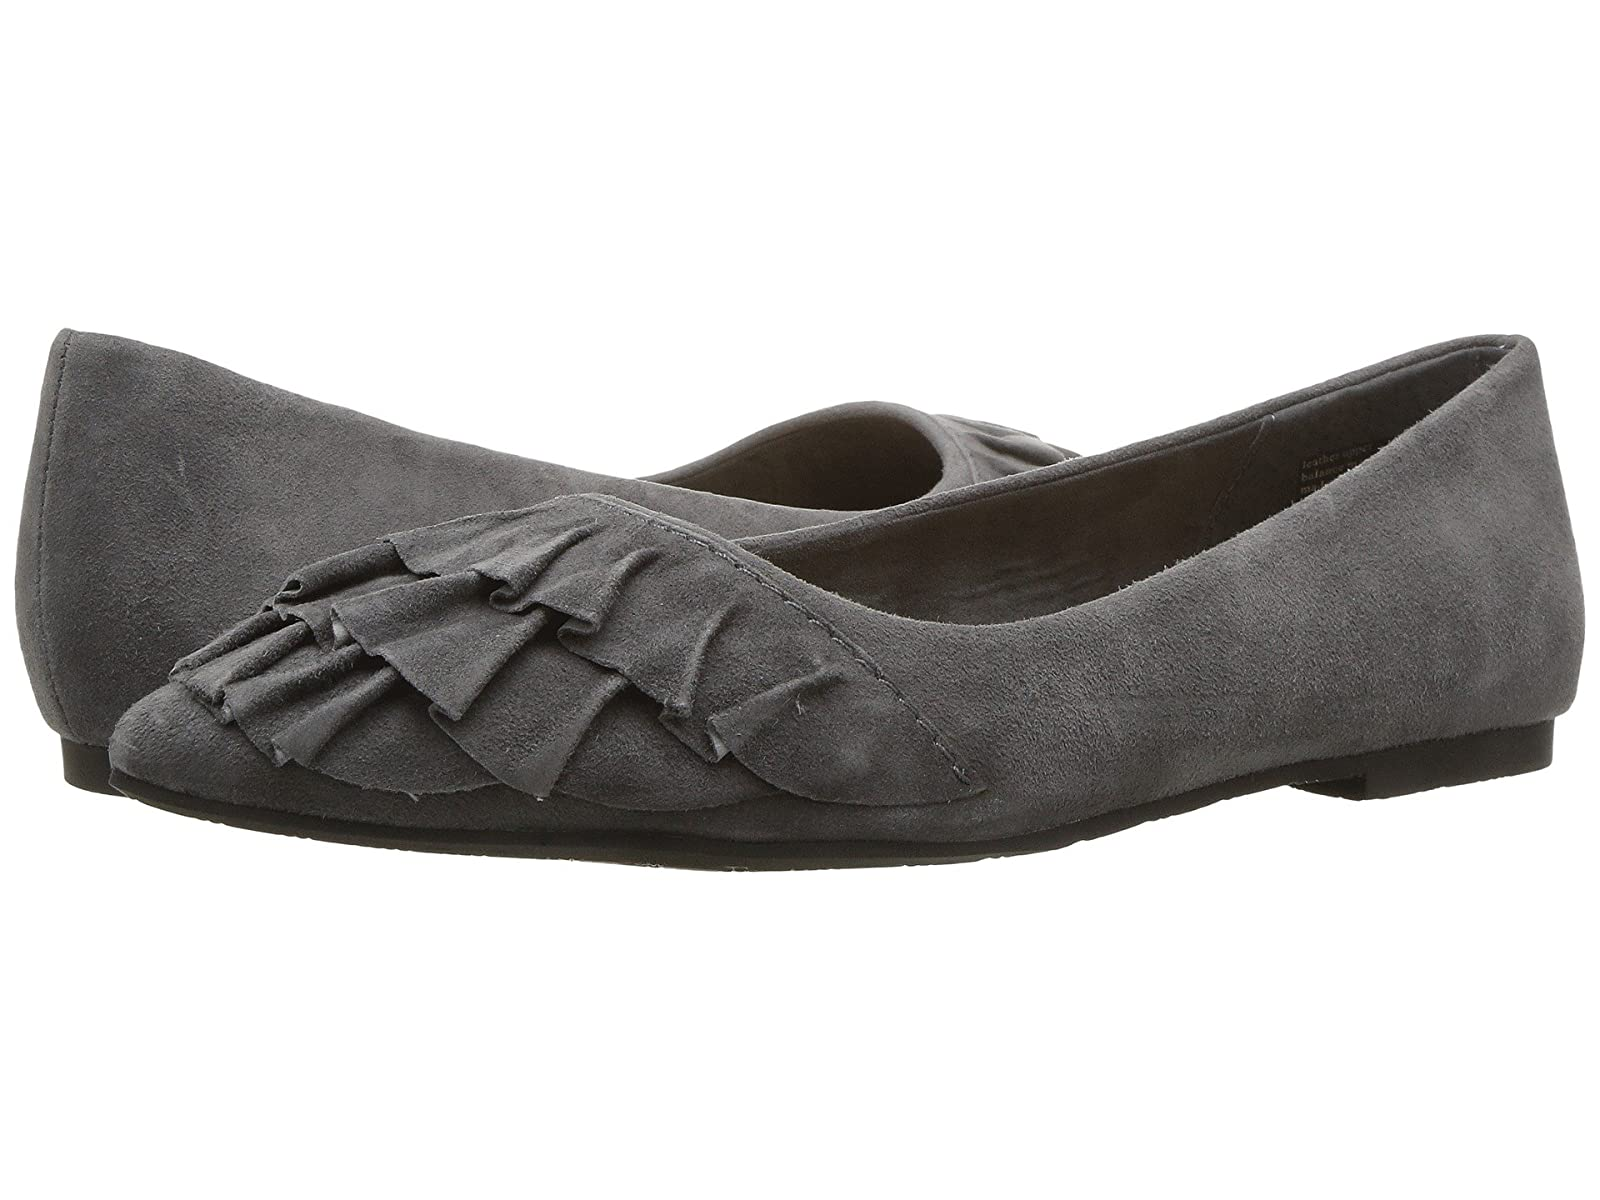 Seychelles DownstageAtmospheric grades have affordable shoes